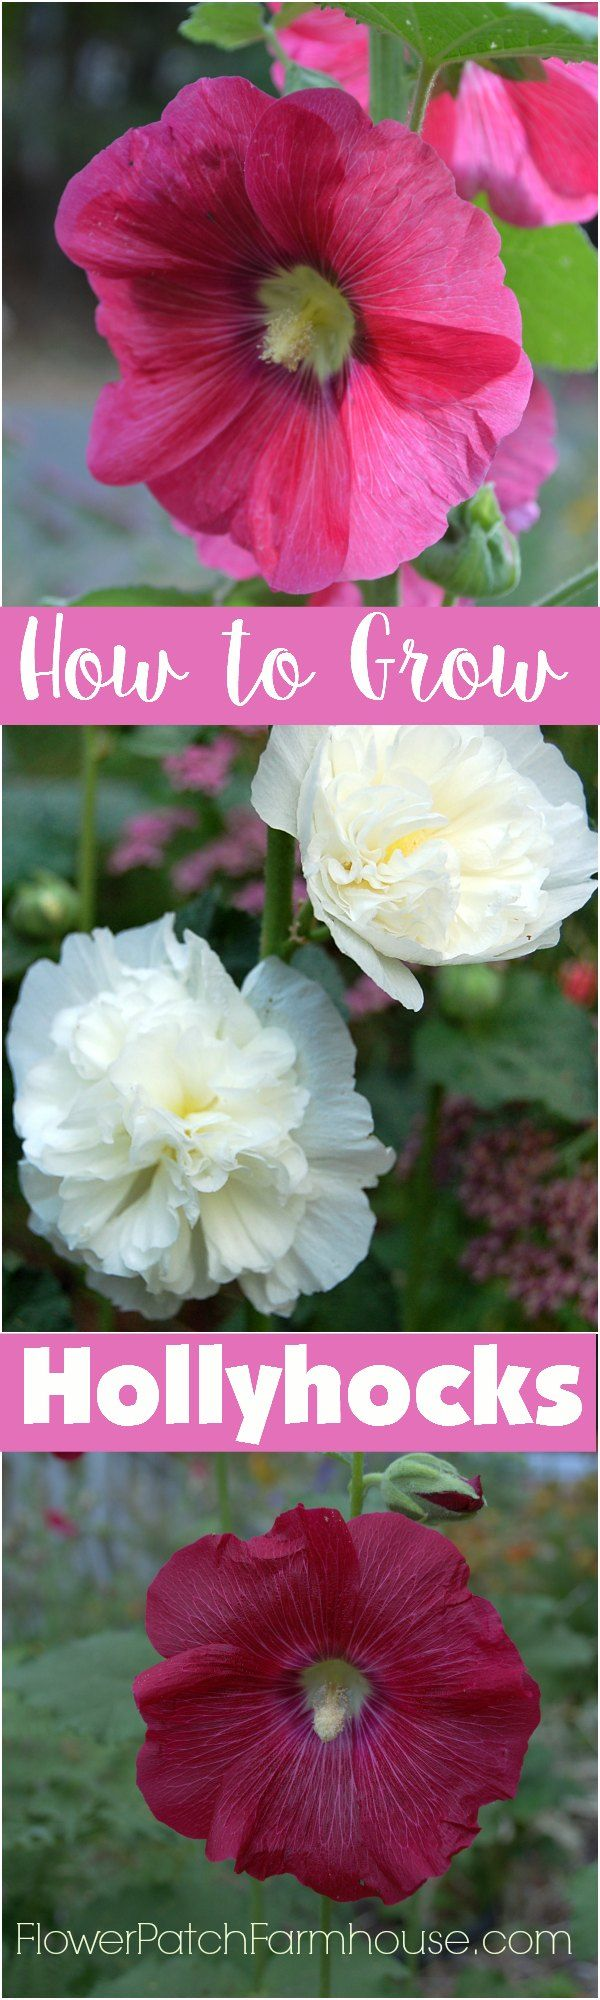 How to Grow Gorgeous Hollyhocks in your Cottage Garden, FlowerPatchFarmhouse.com